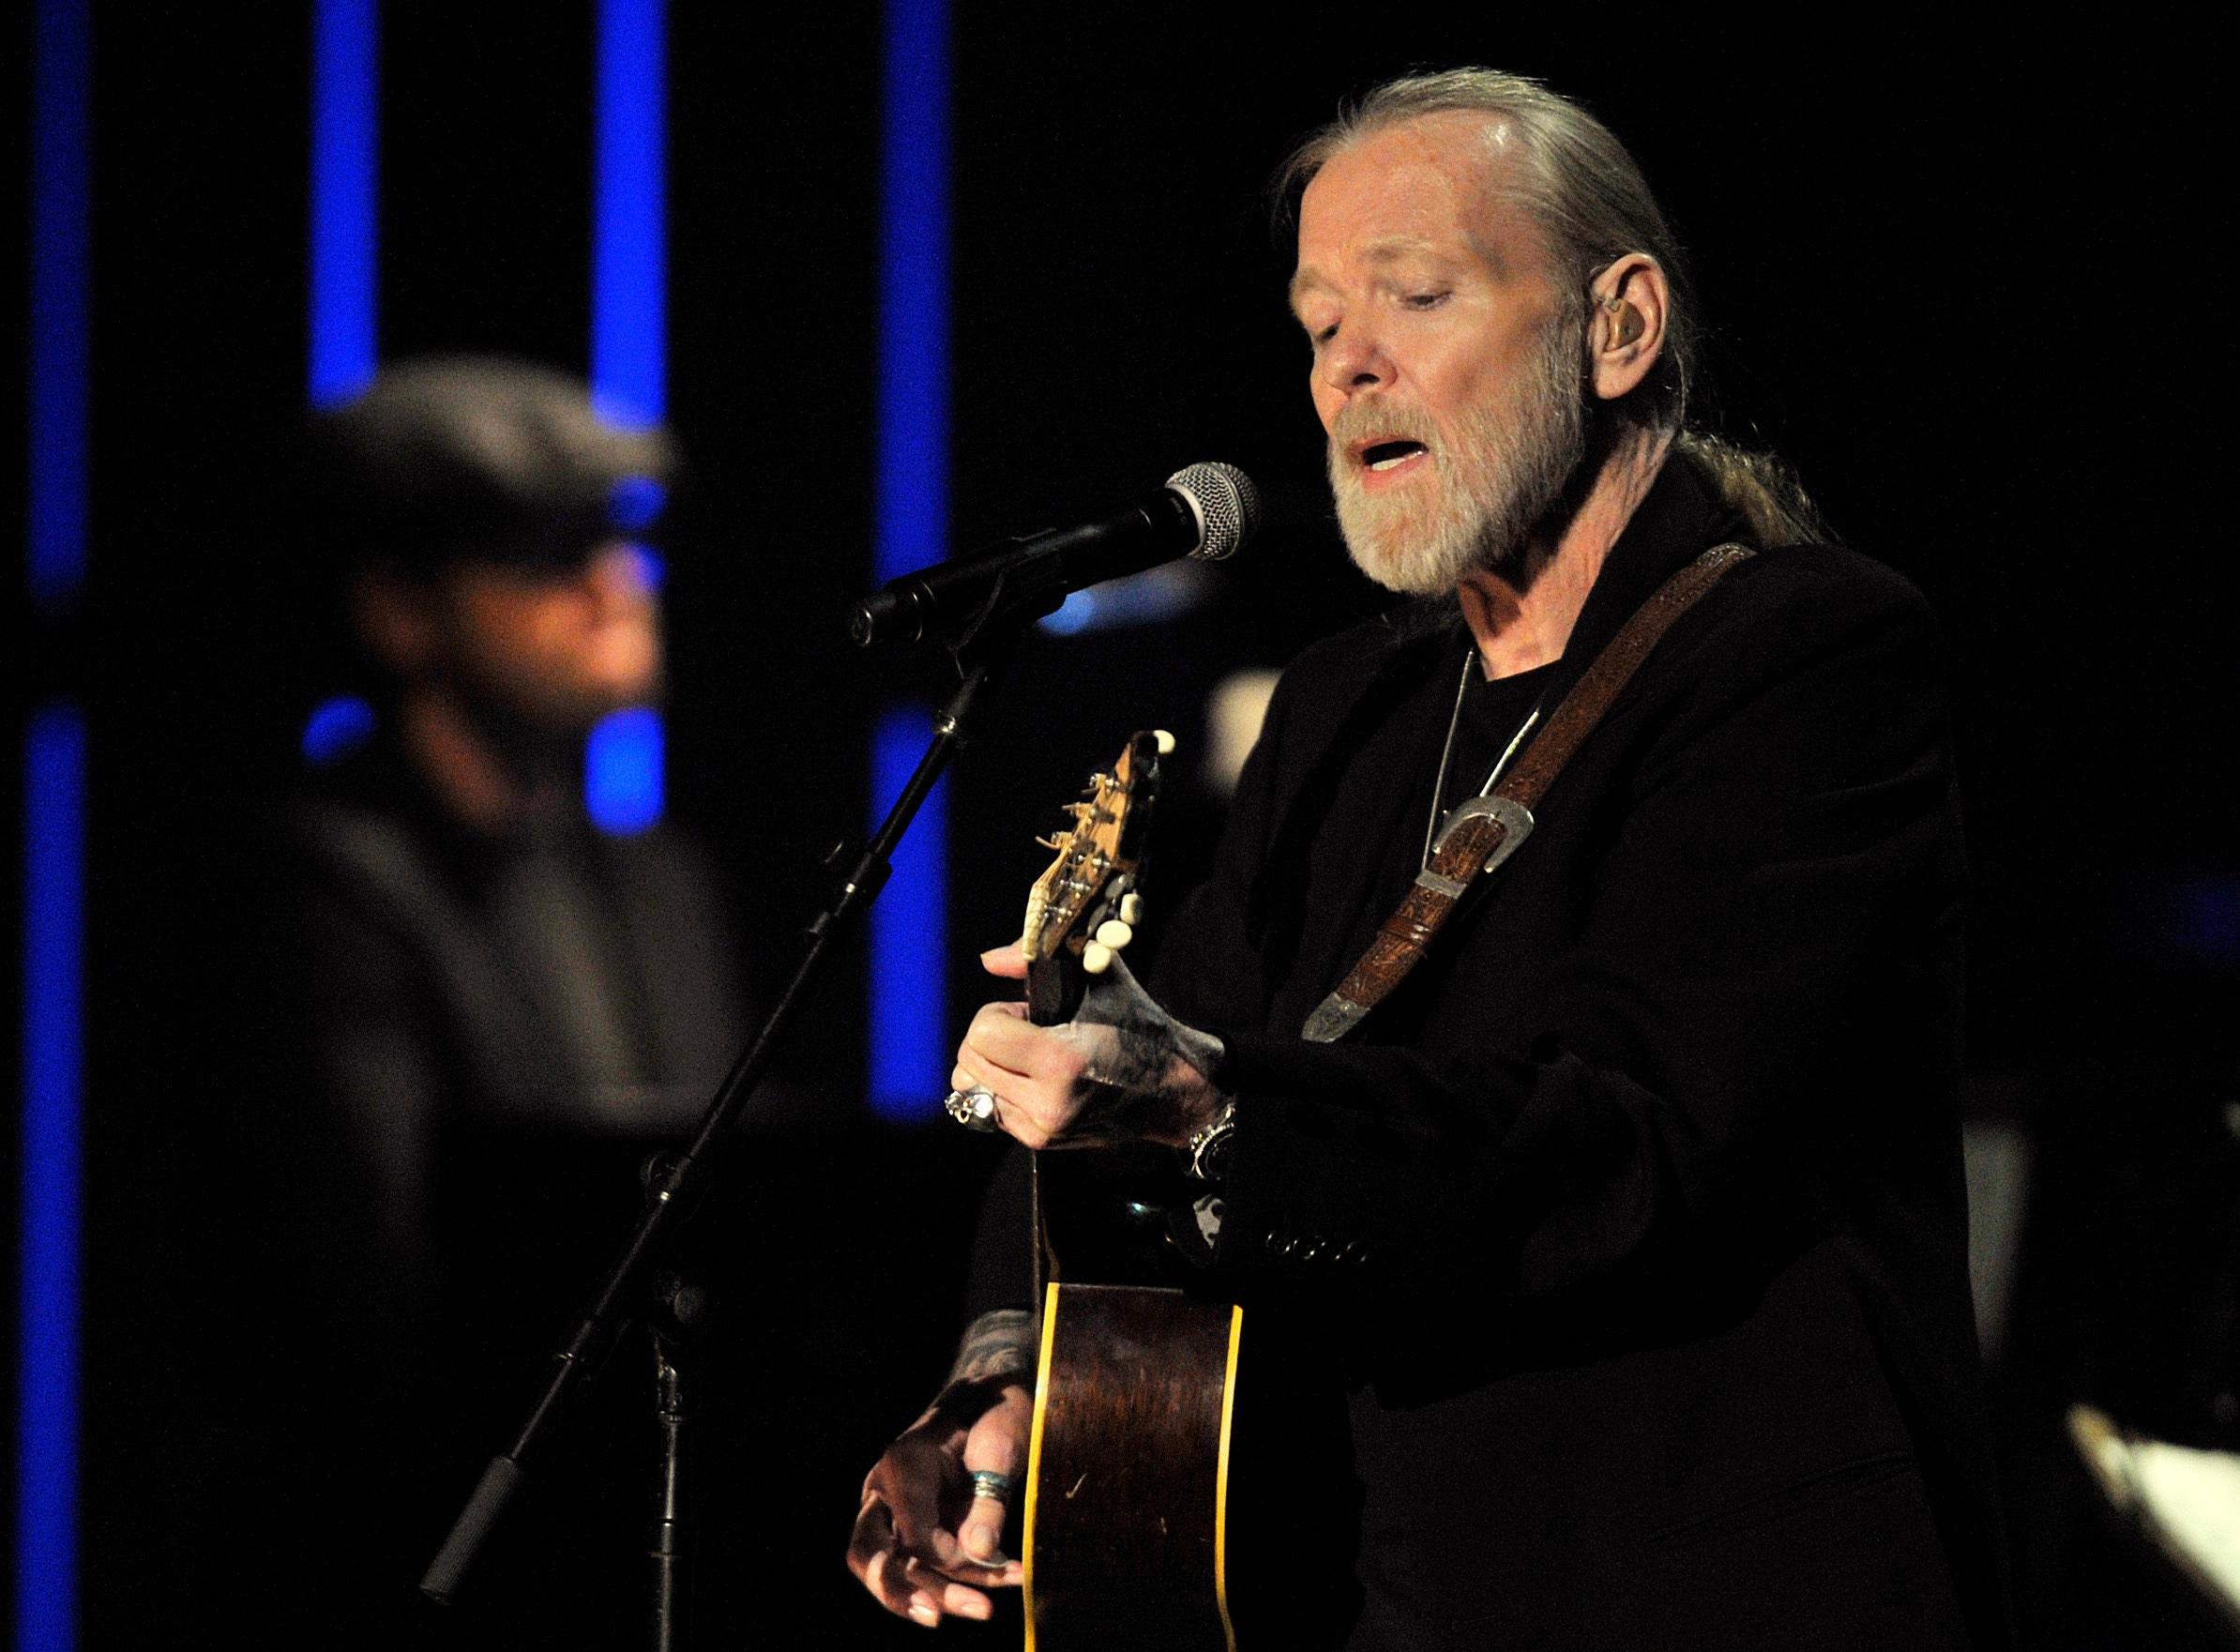 FILE - This Oct. 13, 2011 file photo shows Gregg Allman performs at the Americana Music Association awards show in Nashville, Tenn. On Saturday, May 27, 2017, a publicist said the musician, the singer for The Allman Brothers Band, has died. (AP Photo/Joe Howell, File)